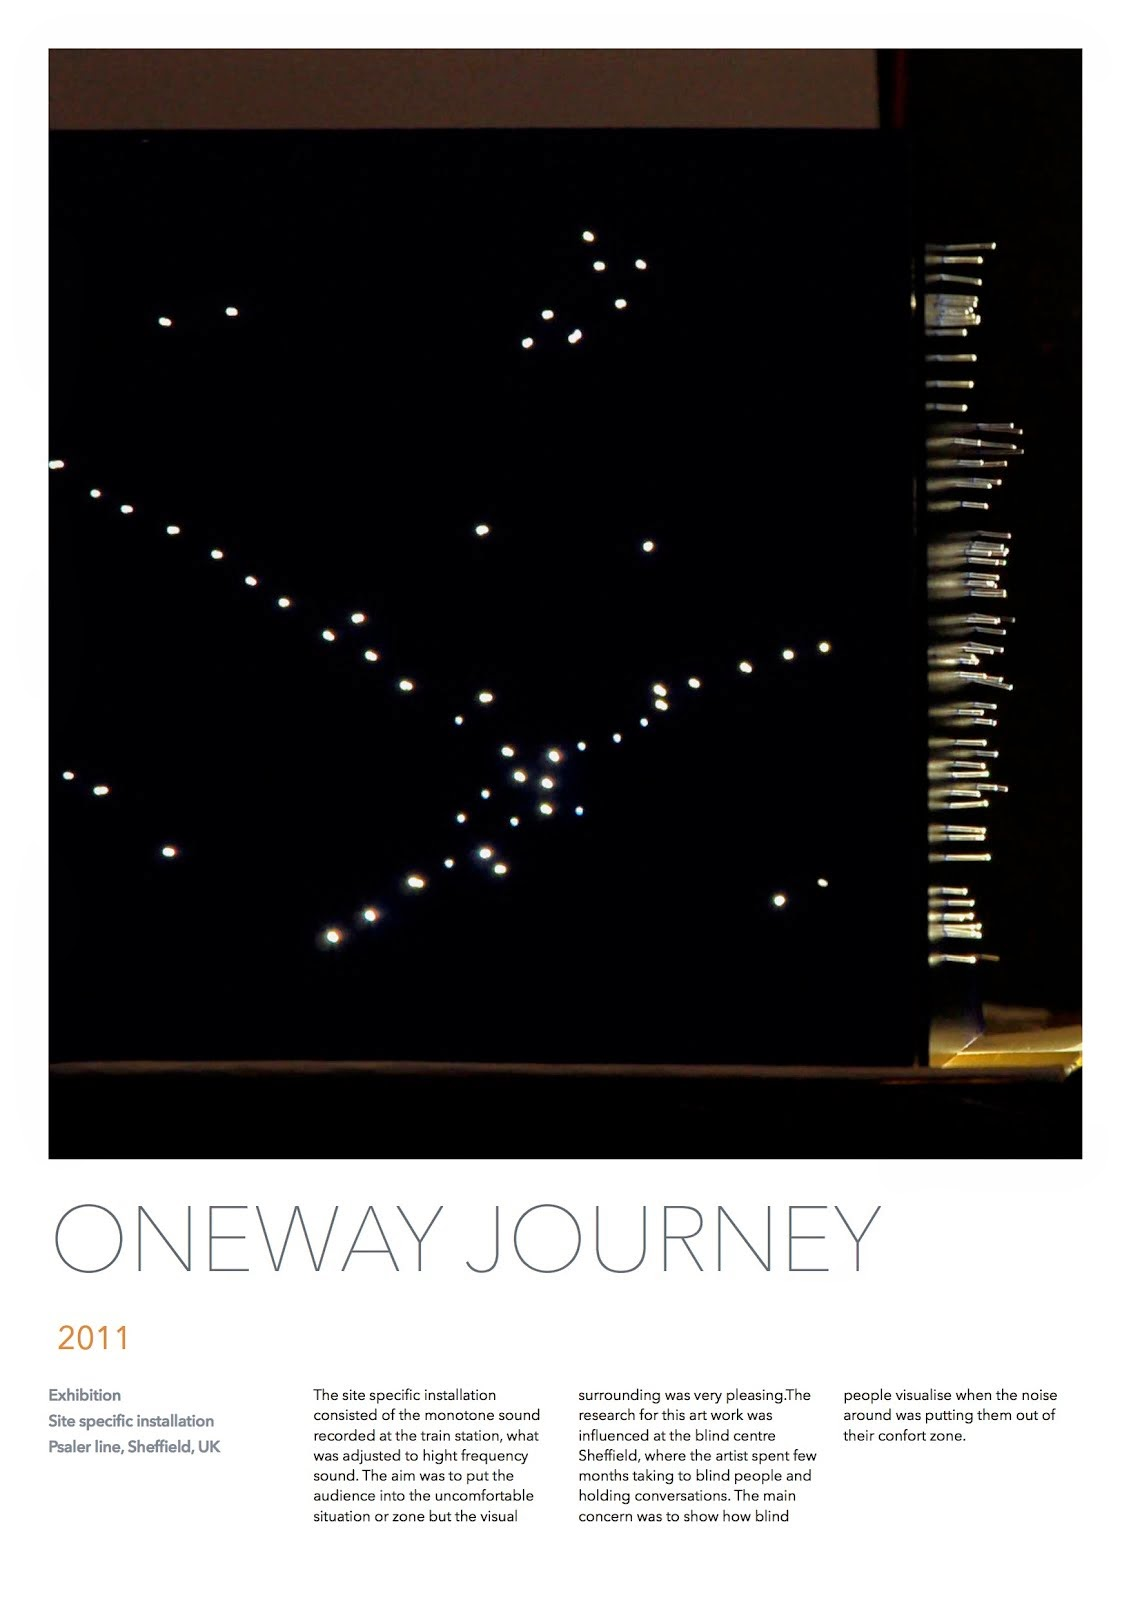 One way journey